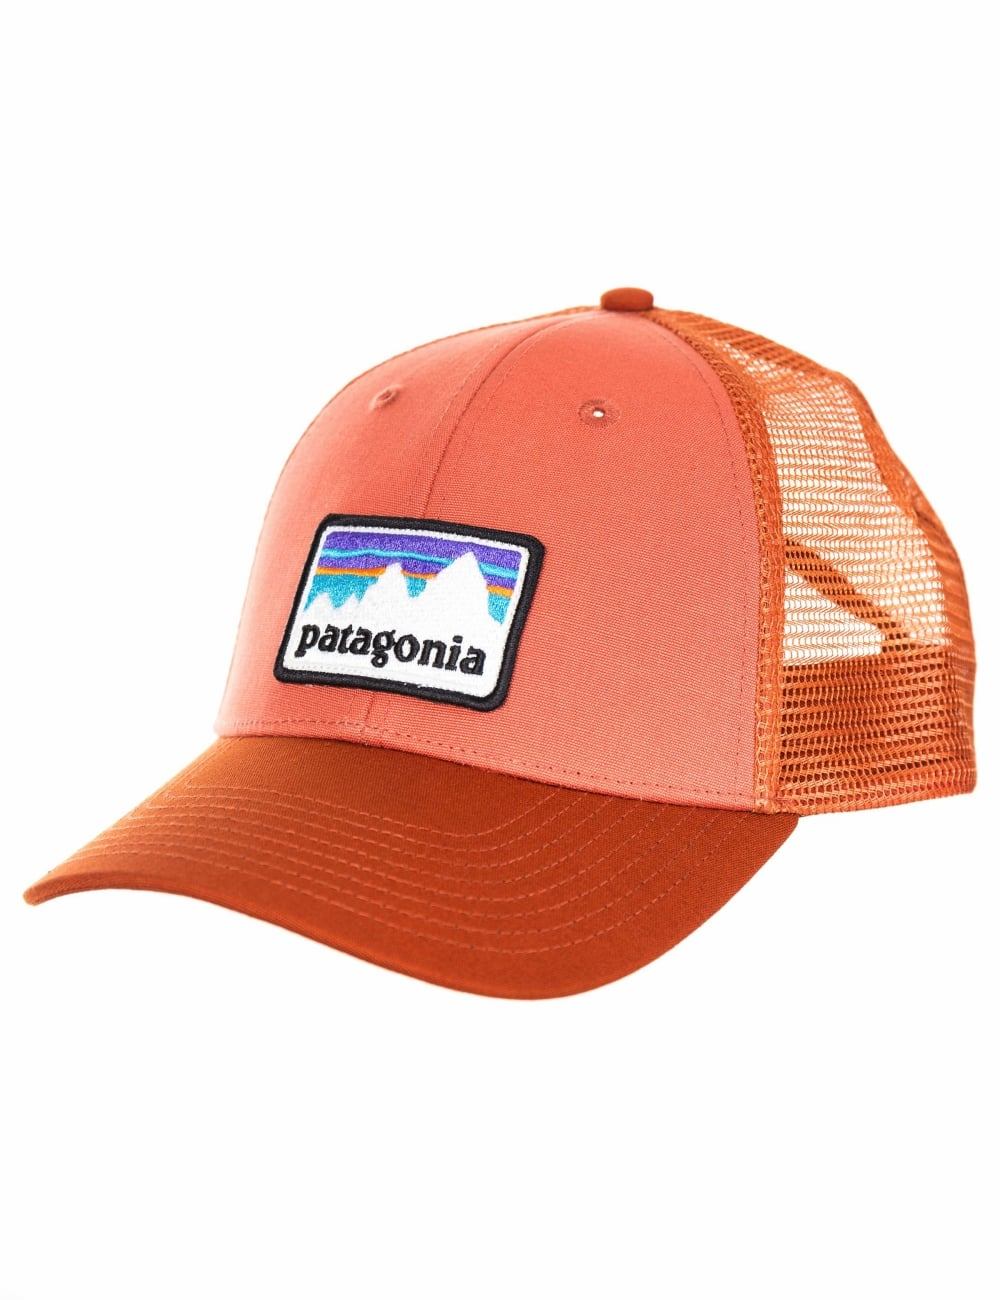 9c780aff3c2 Patagonia Shop Sticker Patch LoPro Trucker Hat - Quartz Coral - Hat ...